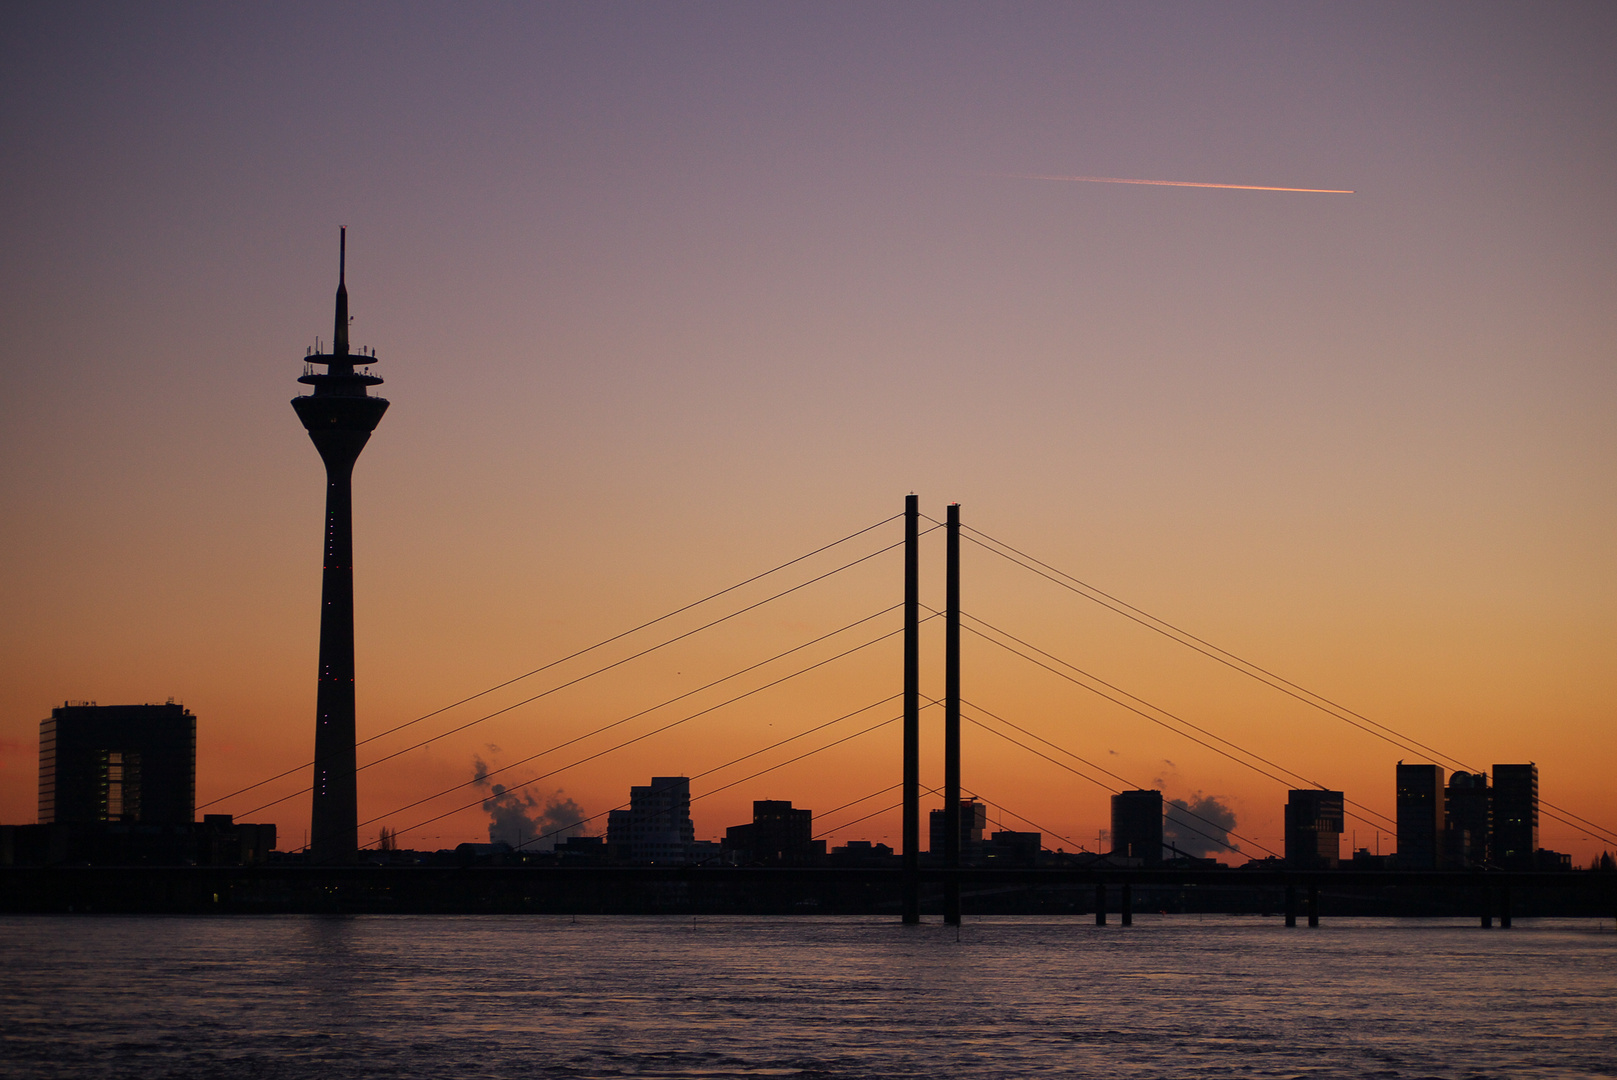 skyline d sseldorf foto bild architektur stadtlandschaft skylines bilder auf fotocommunity. Black Bedroom Furniture Sets. Home Design Ideas